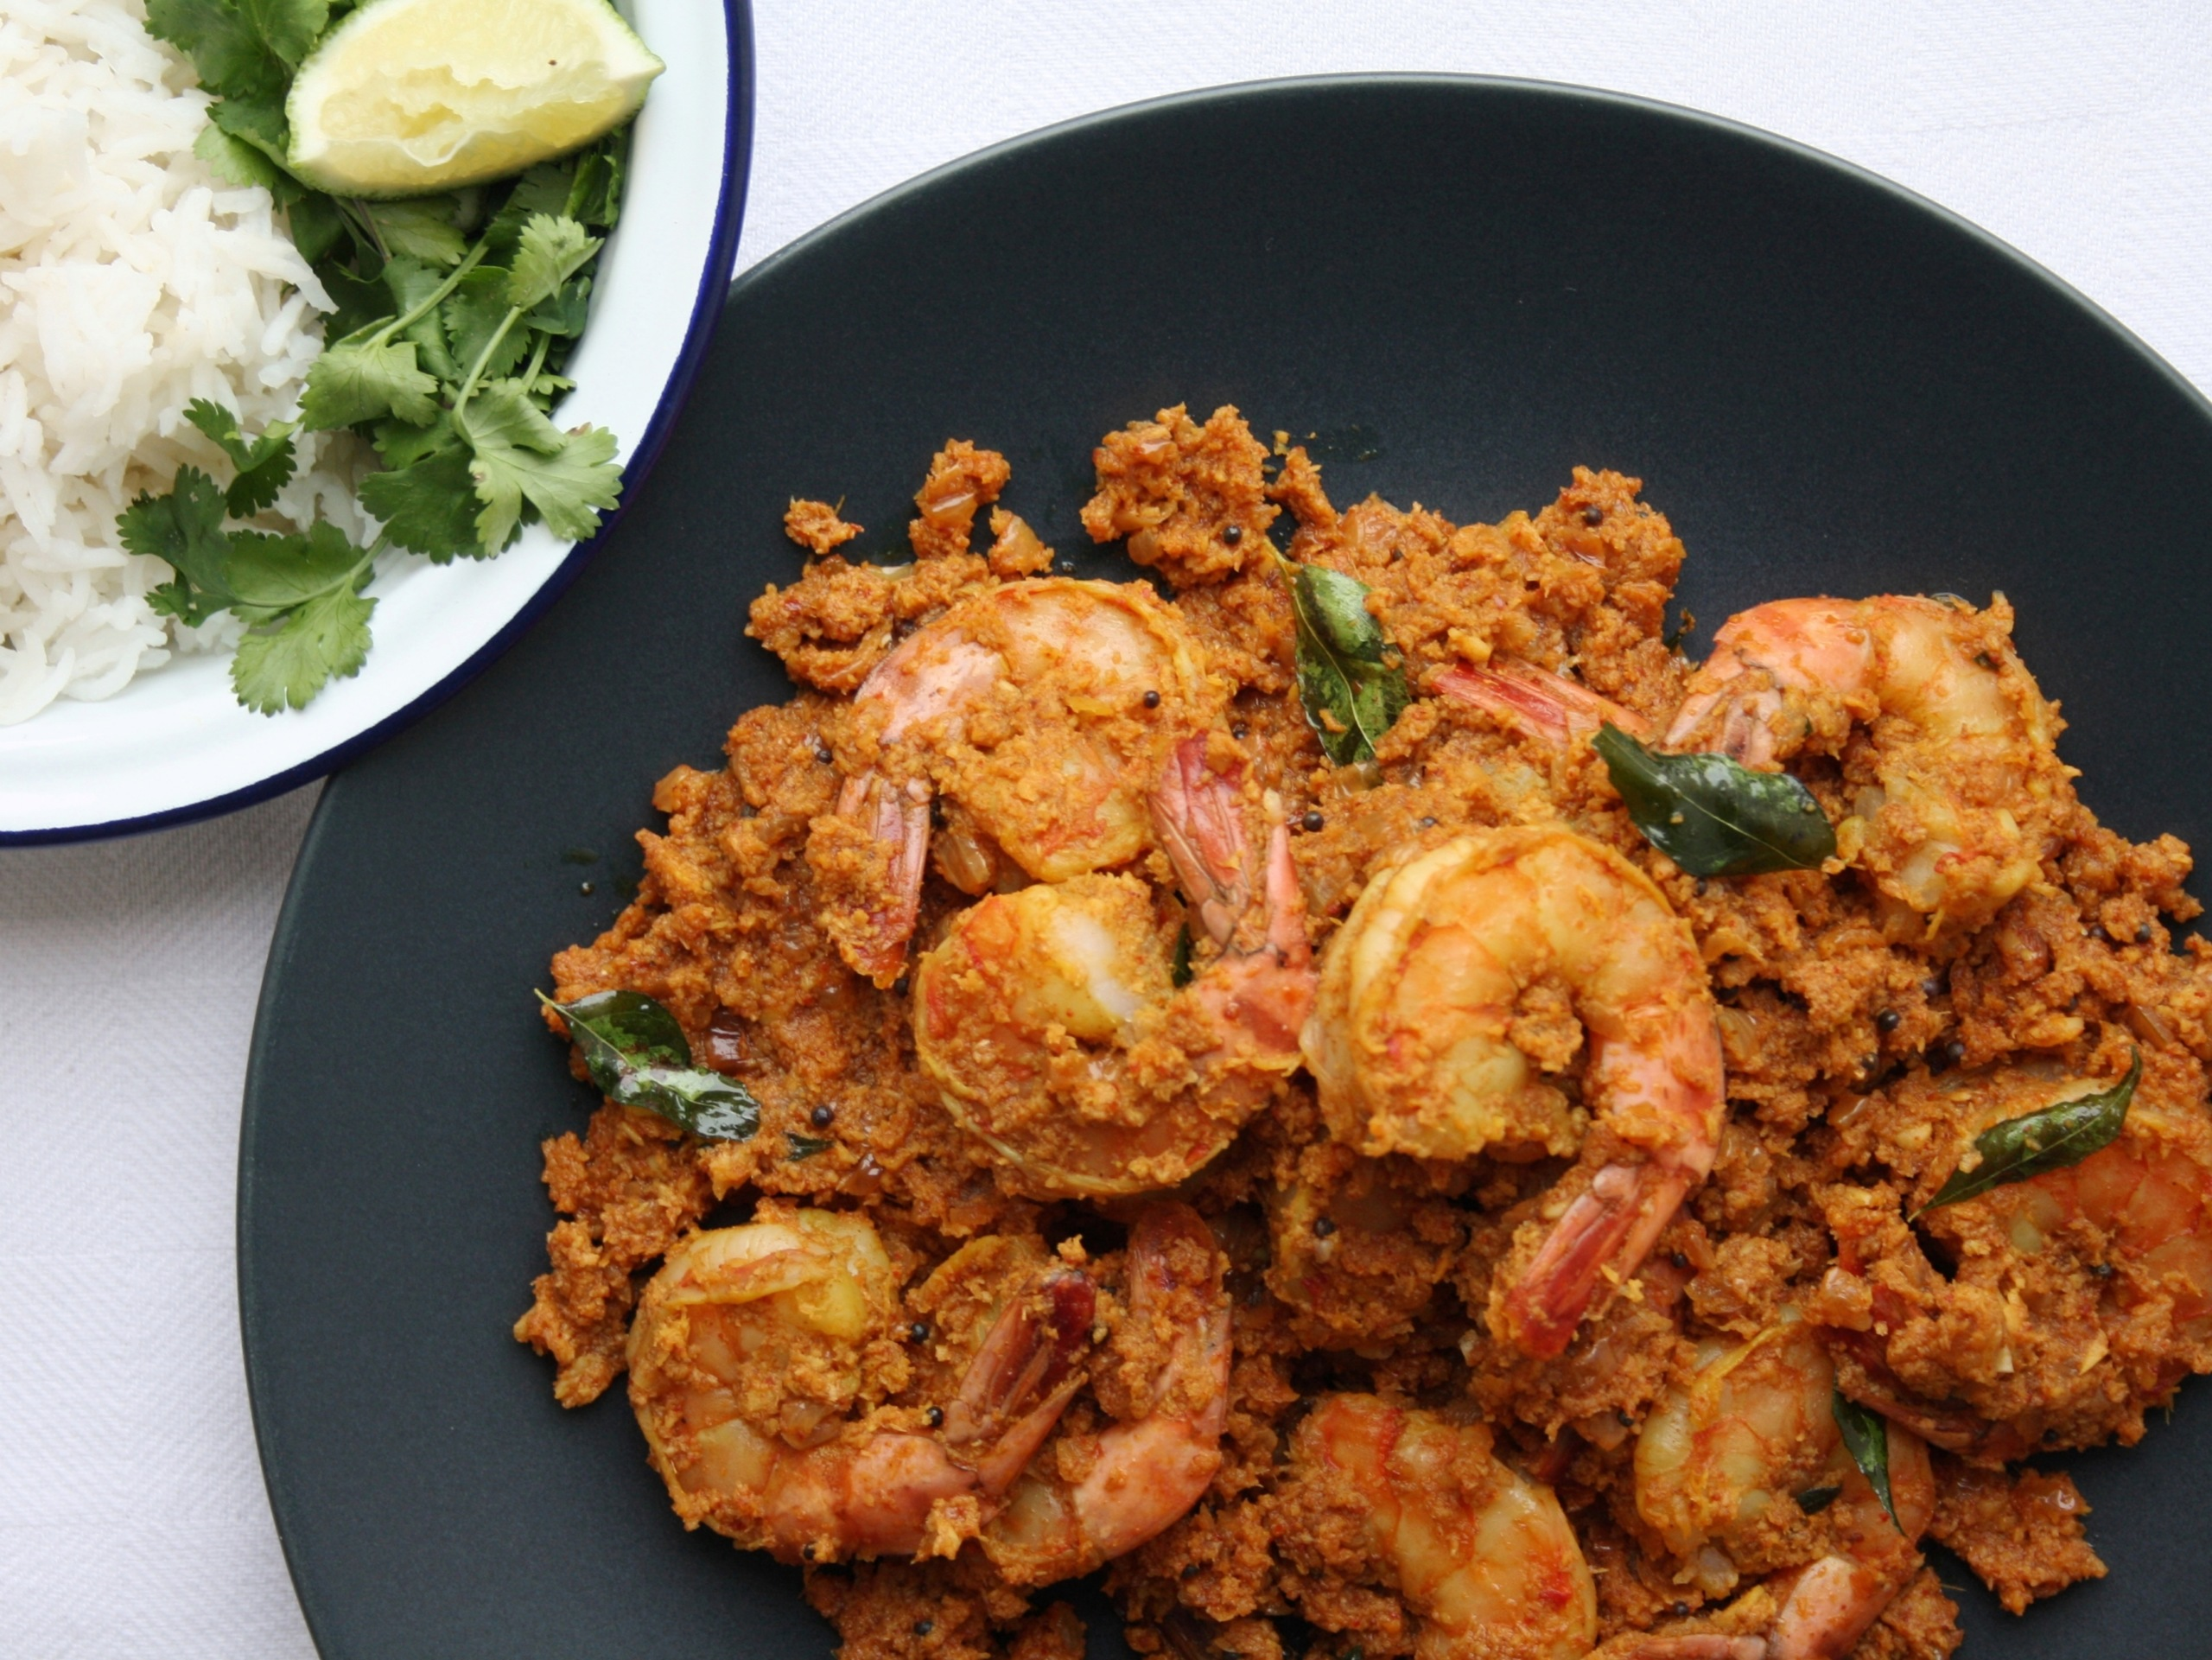 a plate of bengali prawns with a side dish of rice